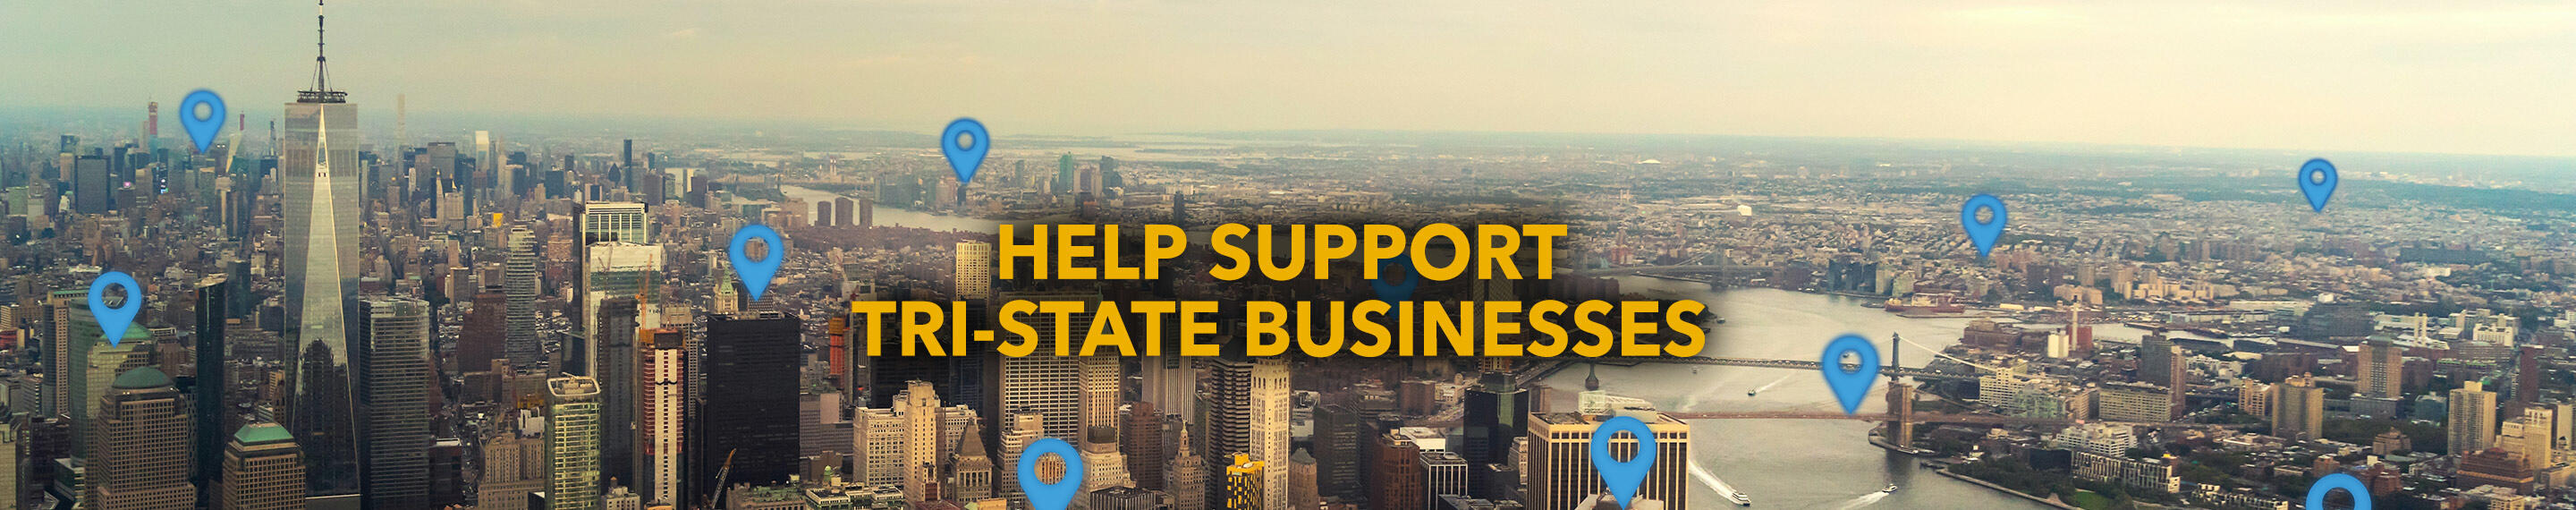 Help Support Tri-State Businesses